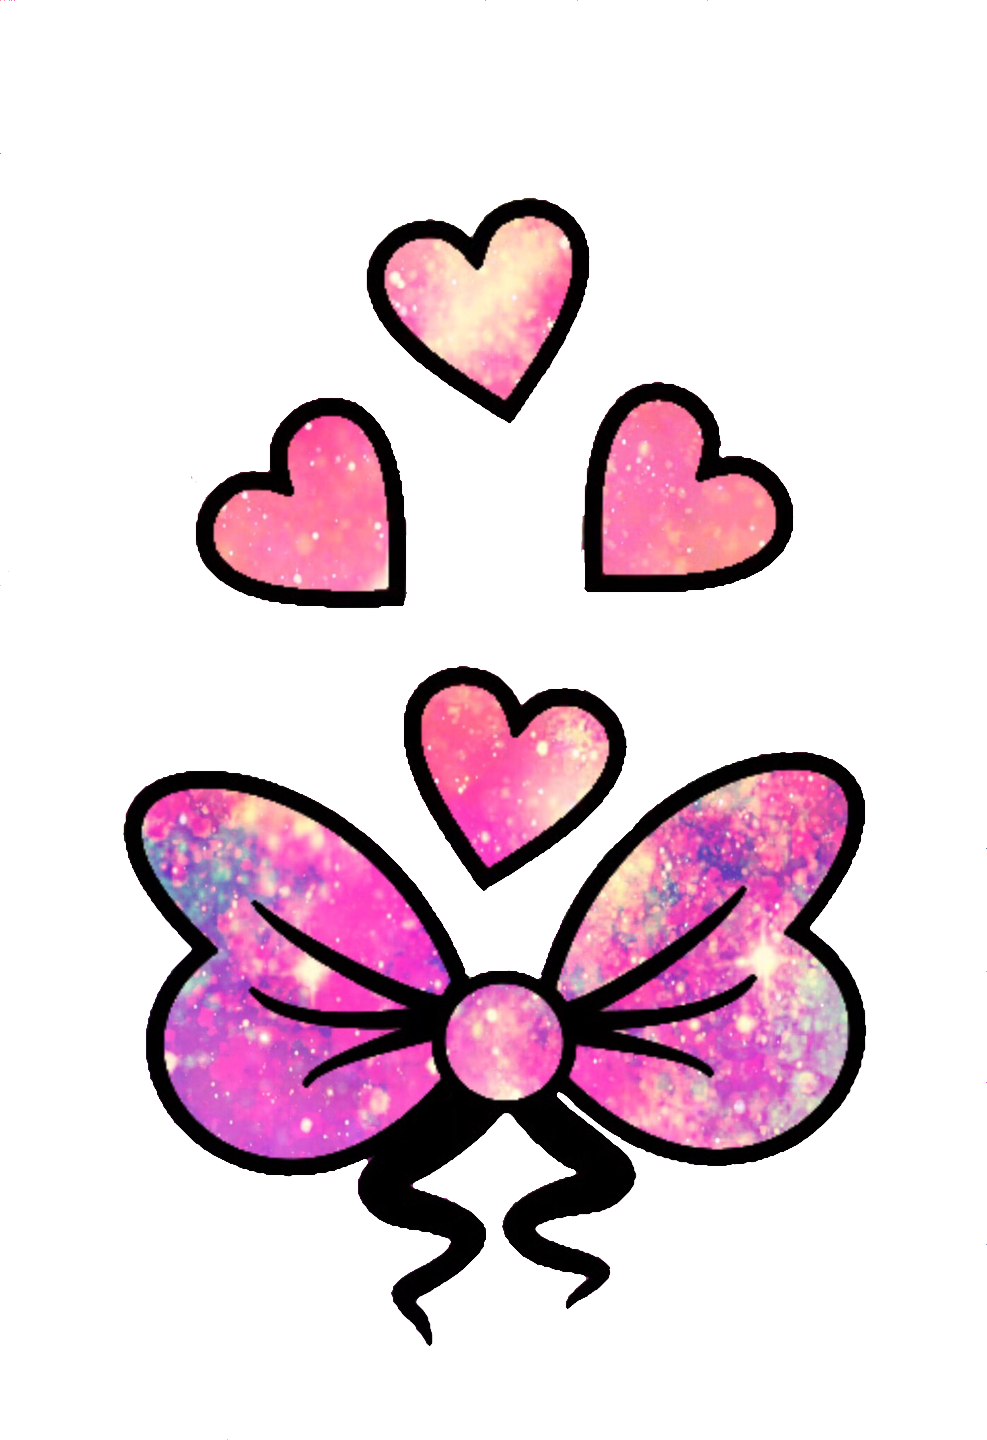 Girly heart clipart svg black and white stock glitter sparkle galaxy cute girly bow hearts love pink... svg black and white stock